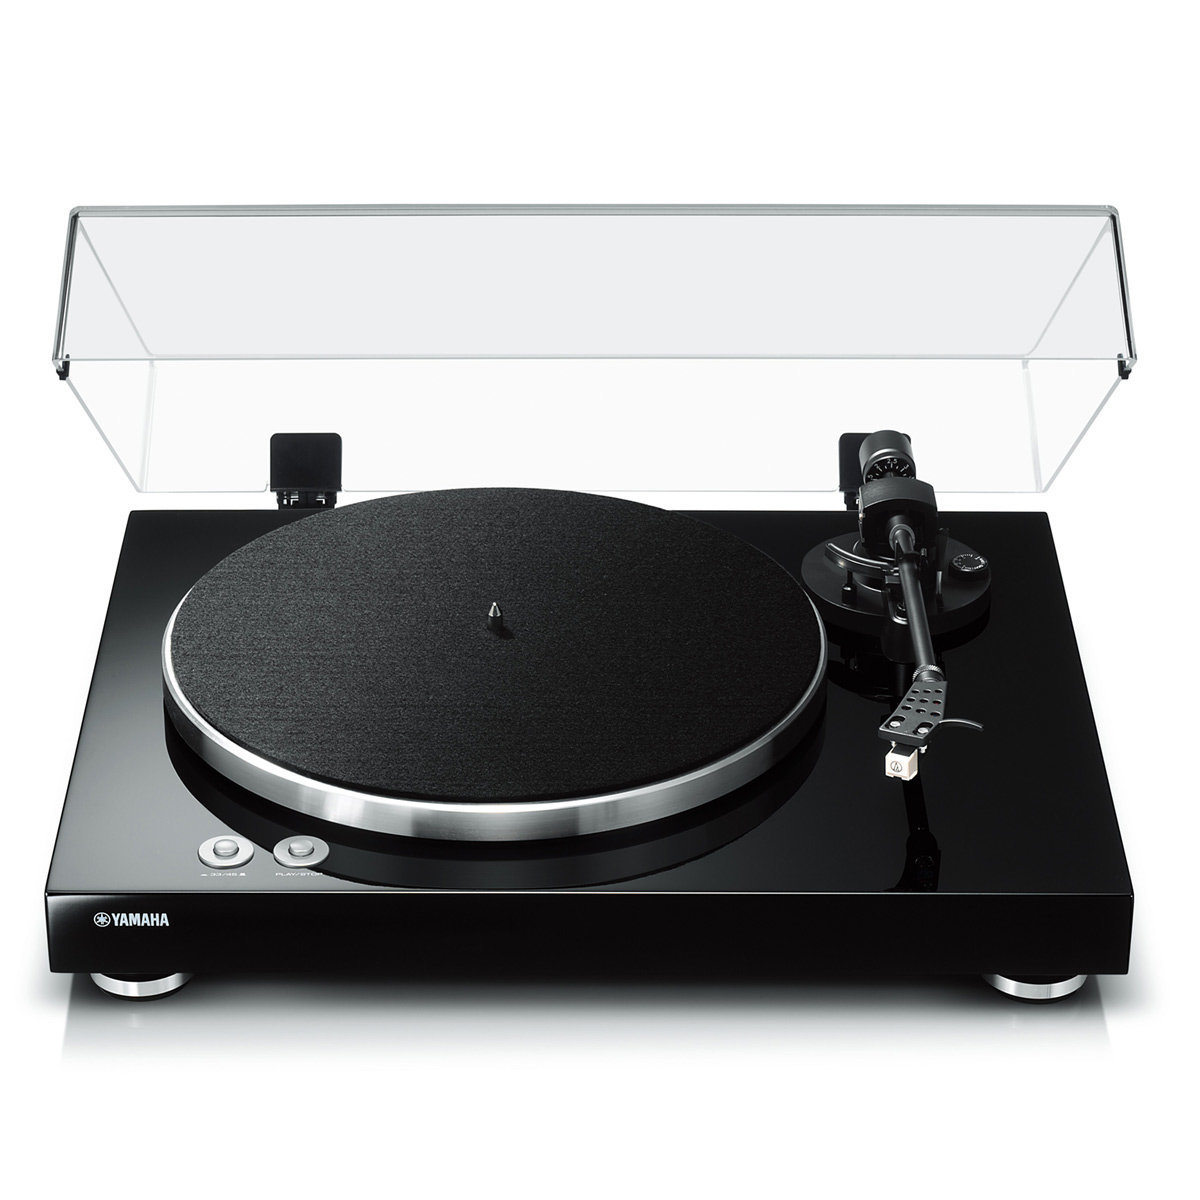 Yamaha - Table tournante TTS303B